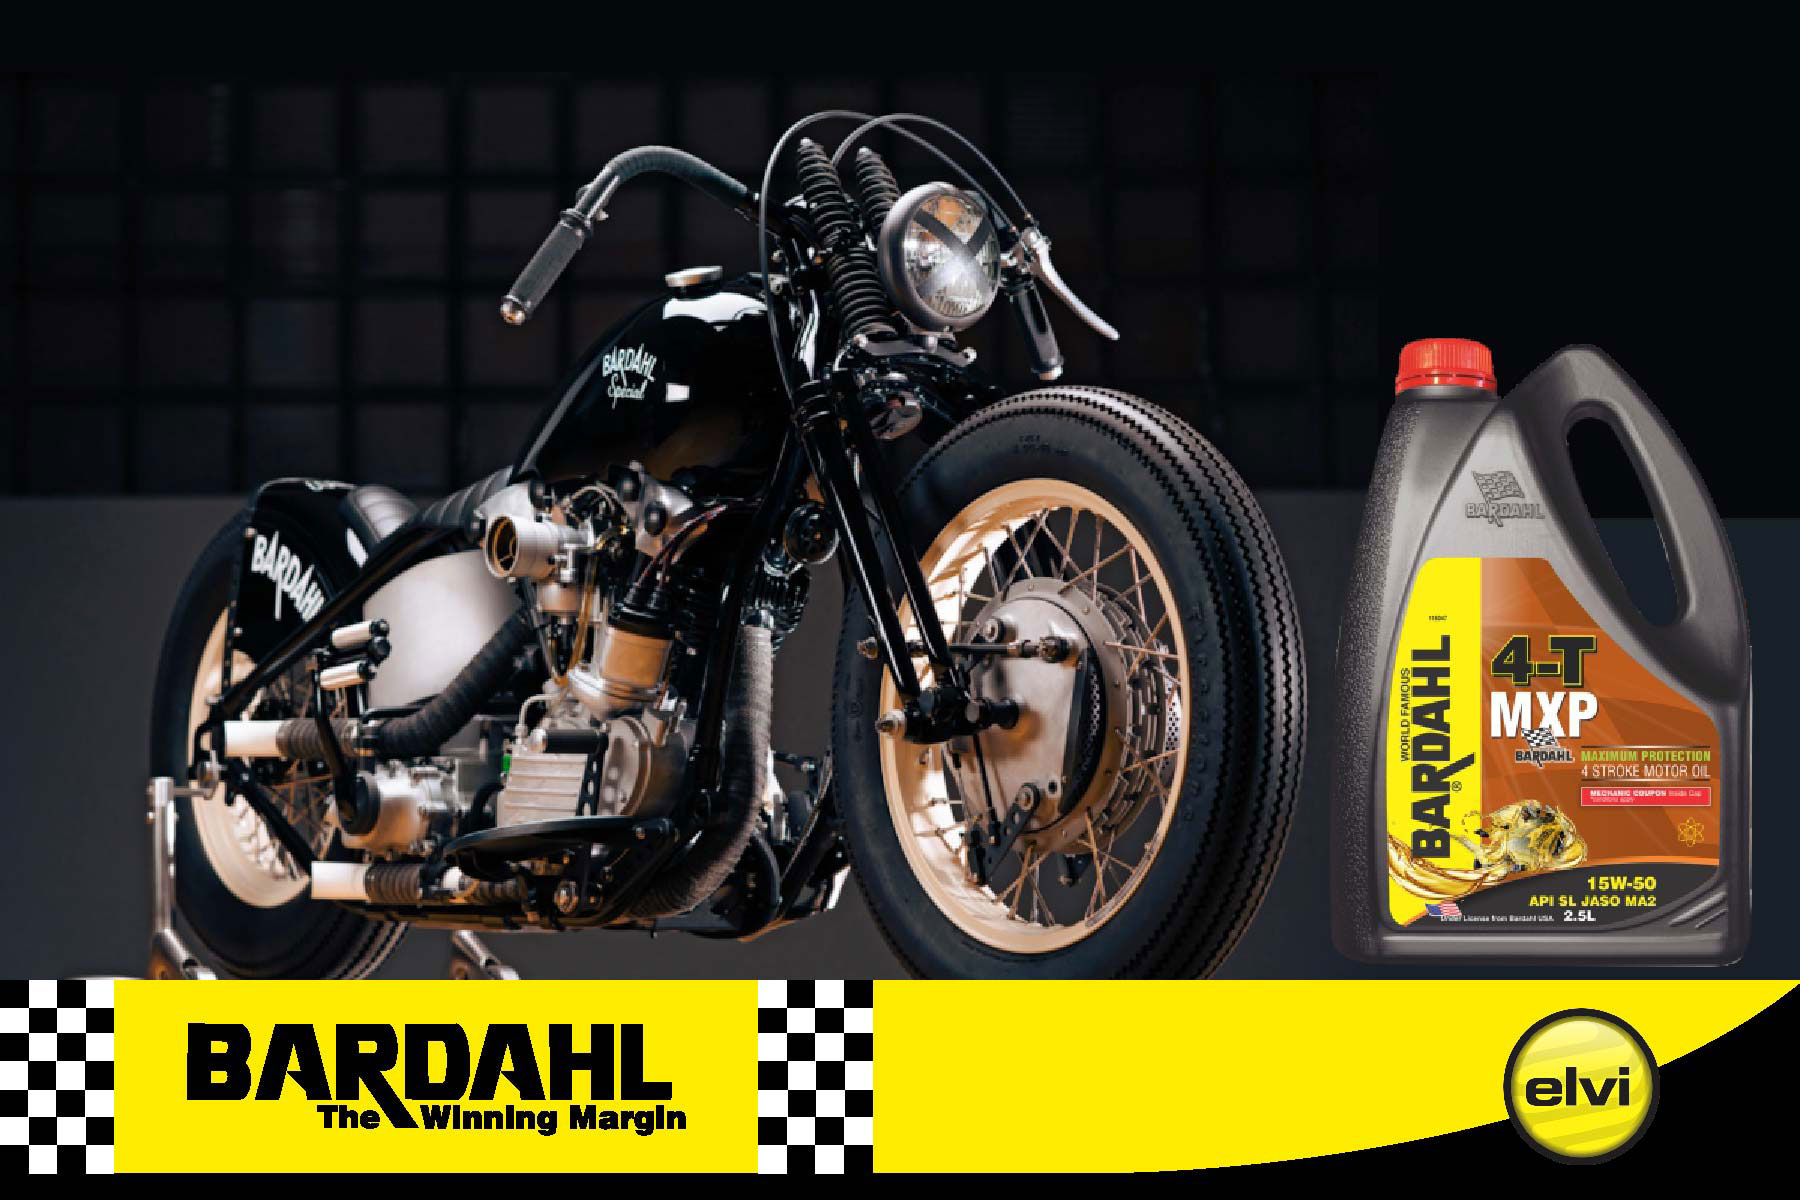 Bardahl launches premium heavy duty motorcycle oil